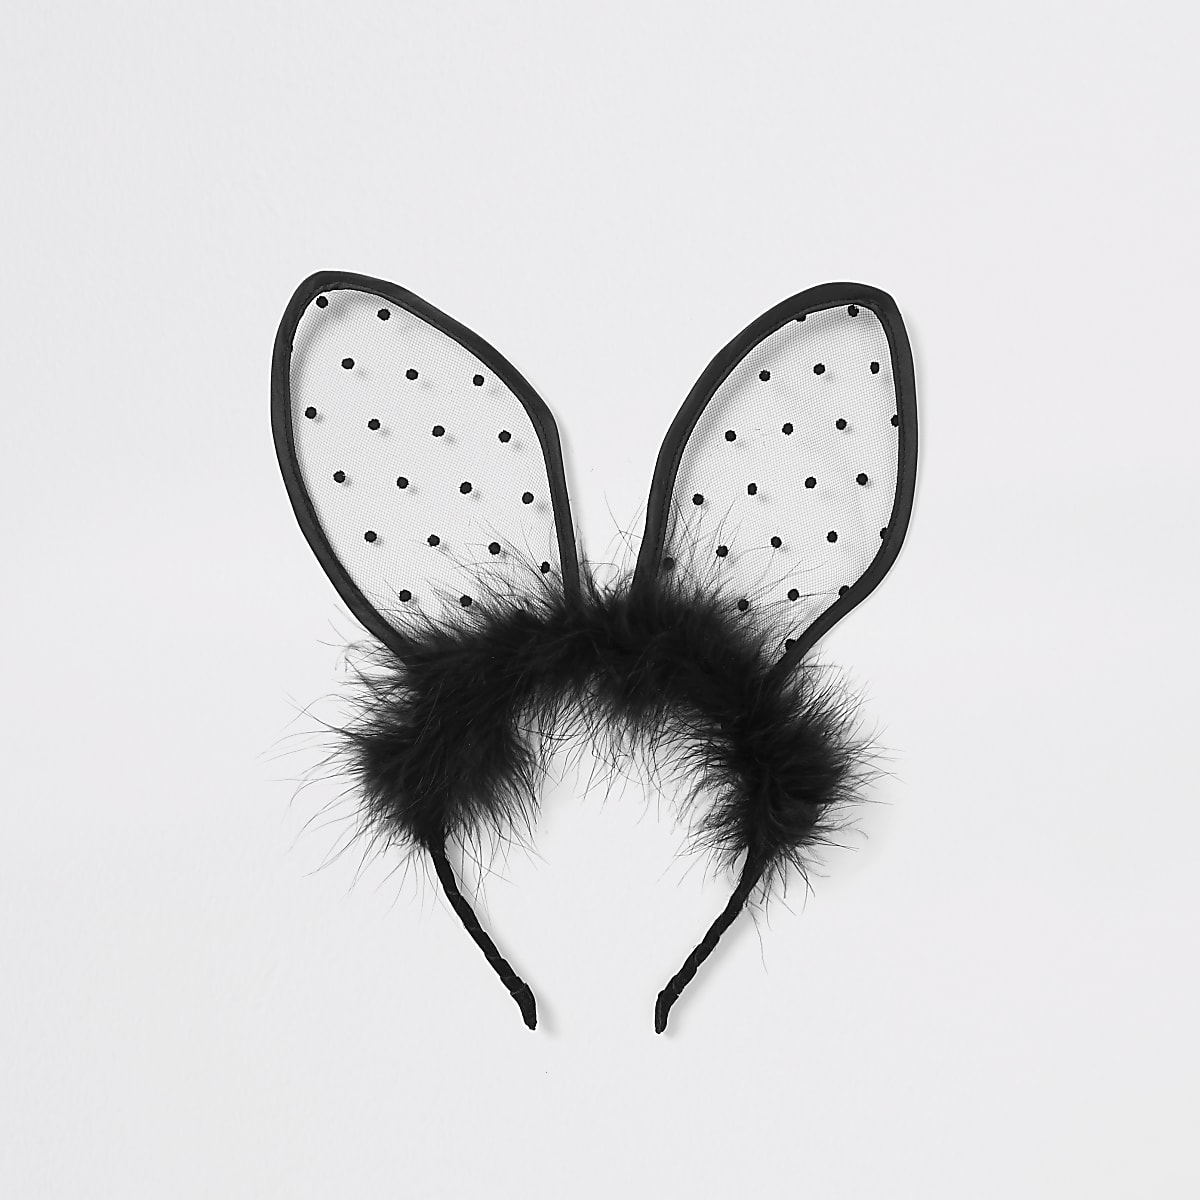 Black polka dot fluffy bunny ear headband